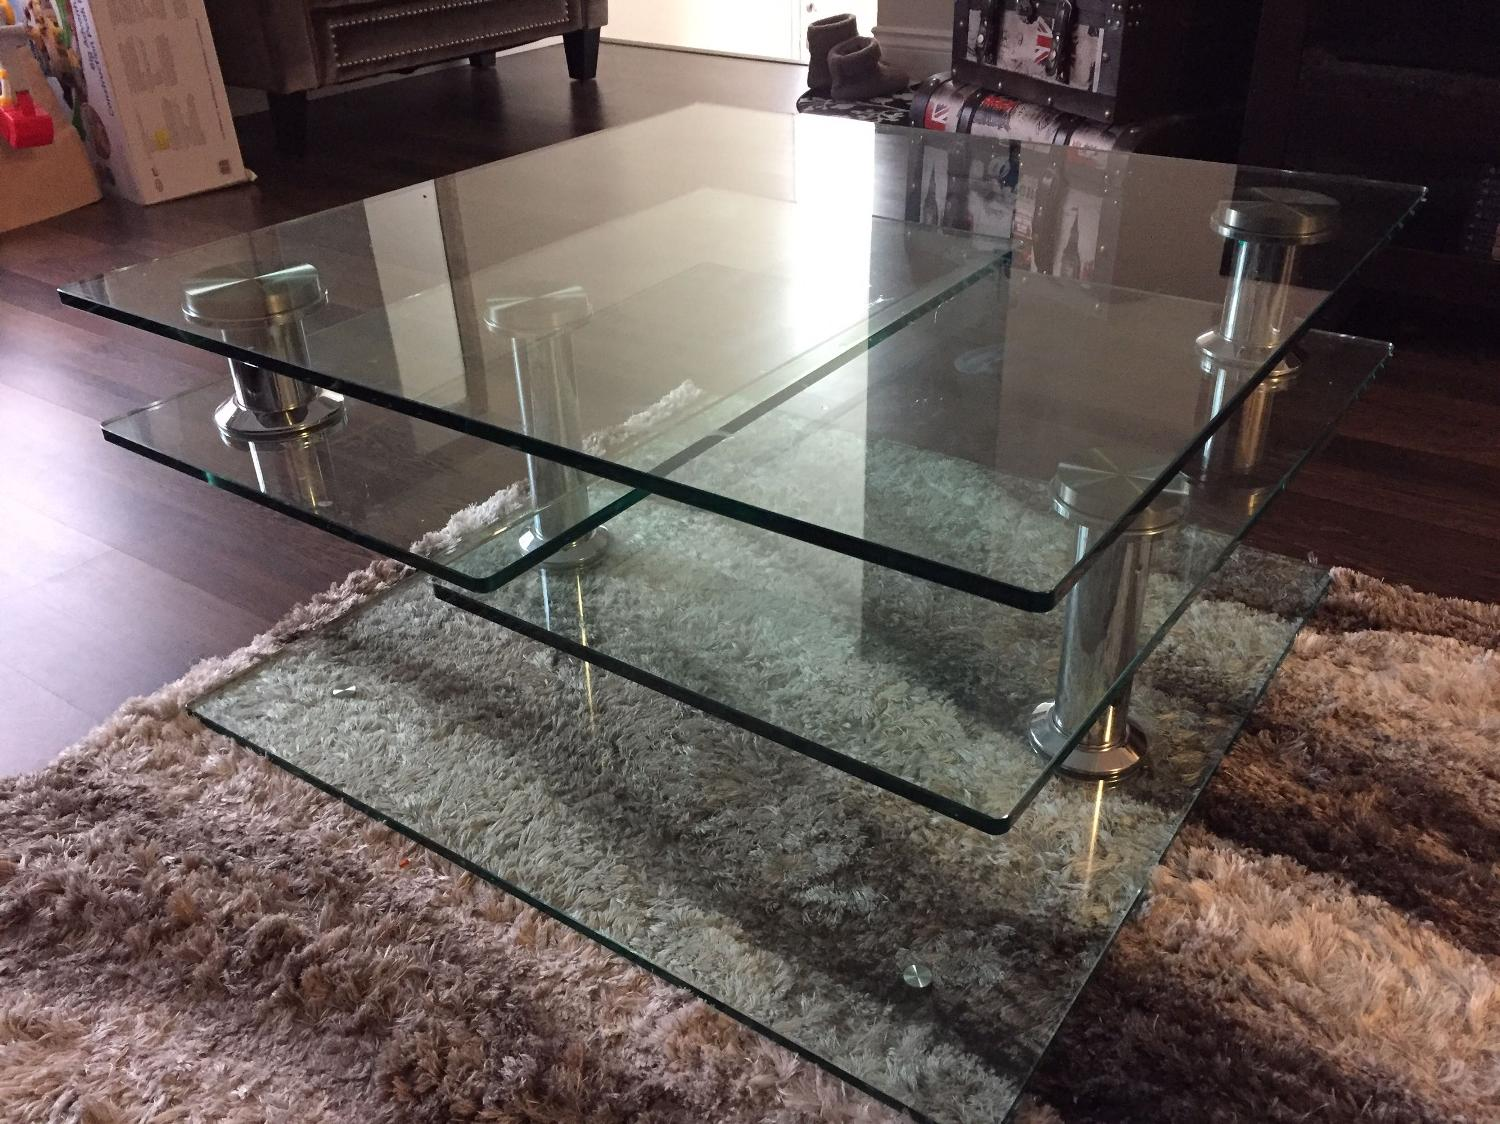 Best glass coffee table for sale in burlington ontario for Furniture burlington wa